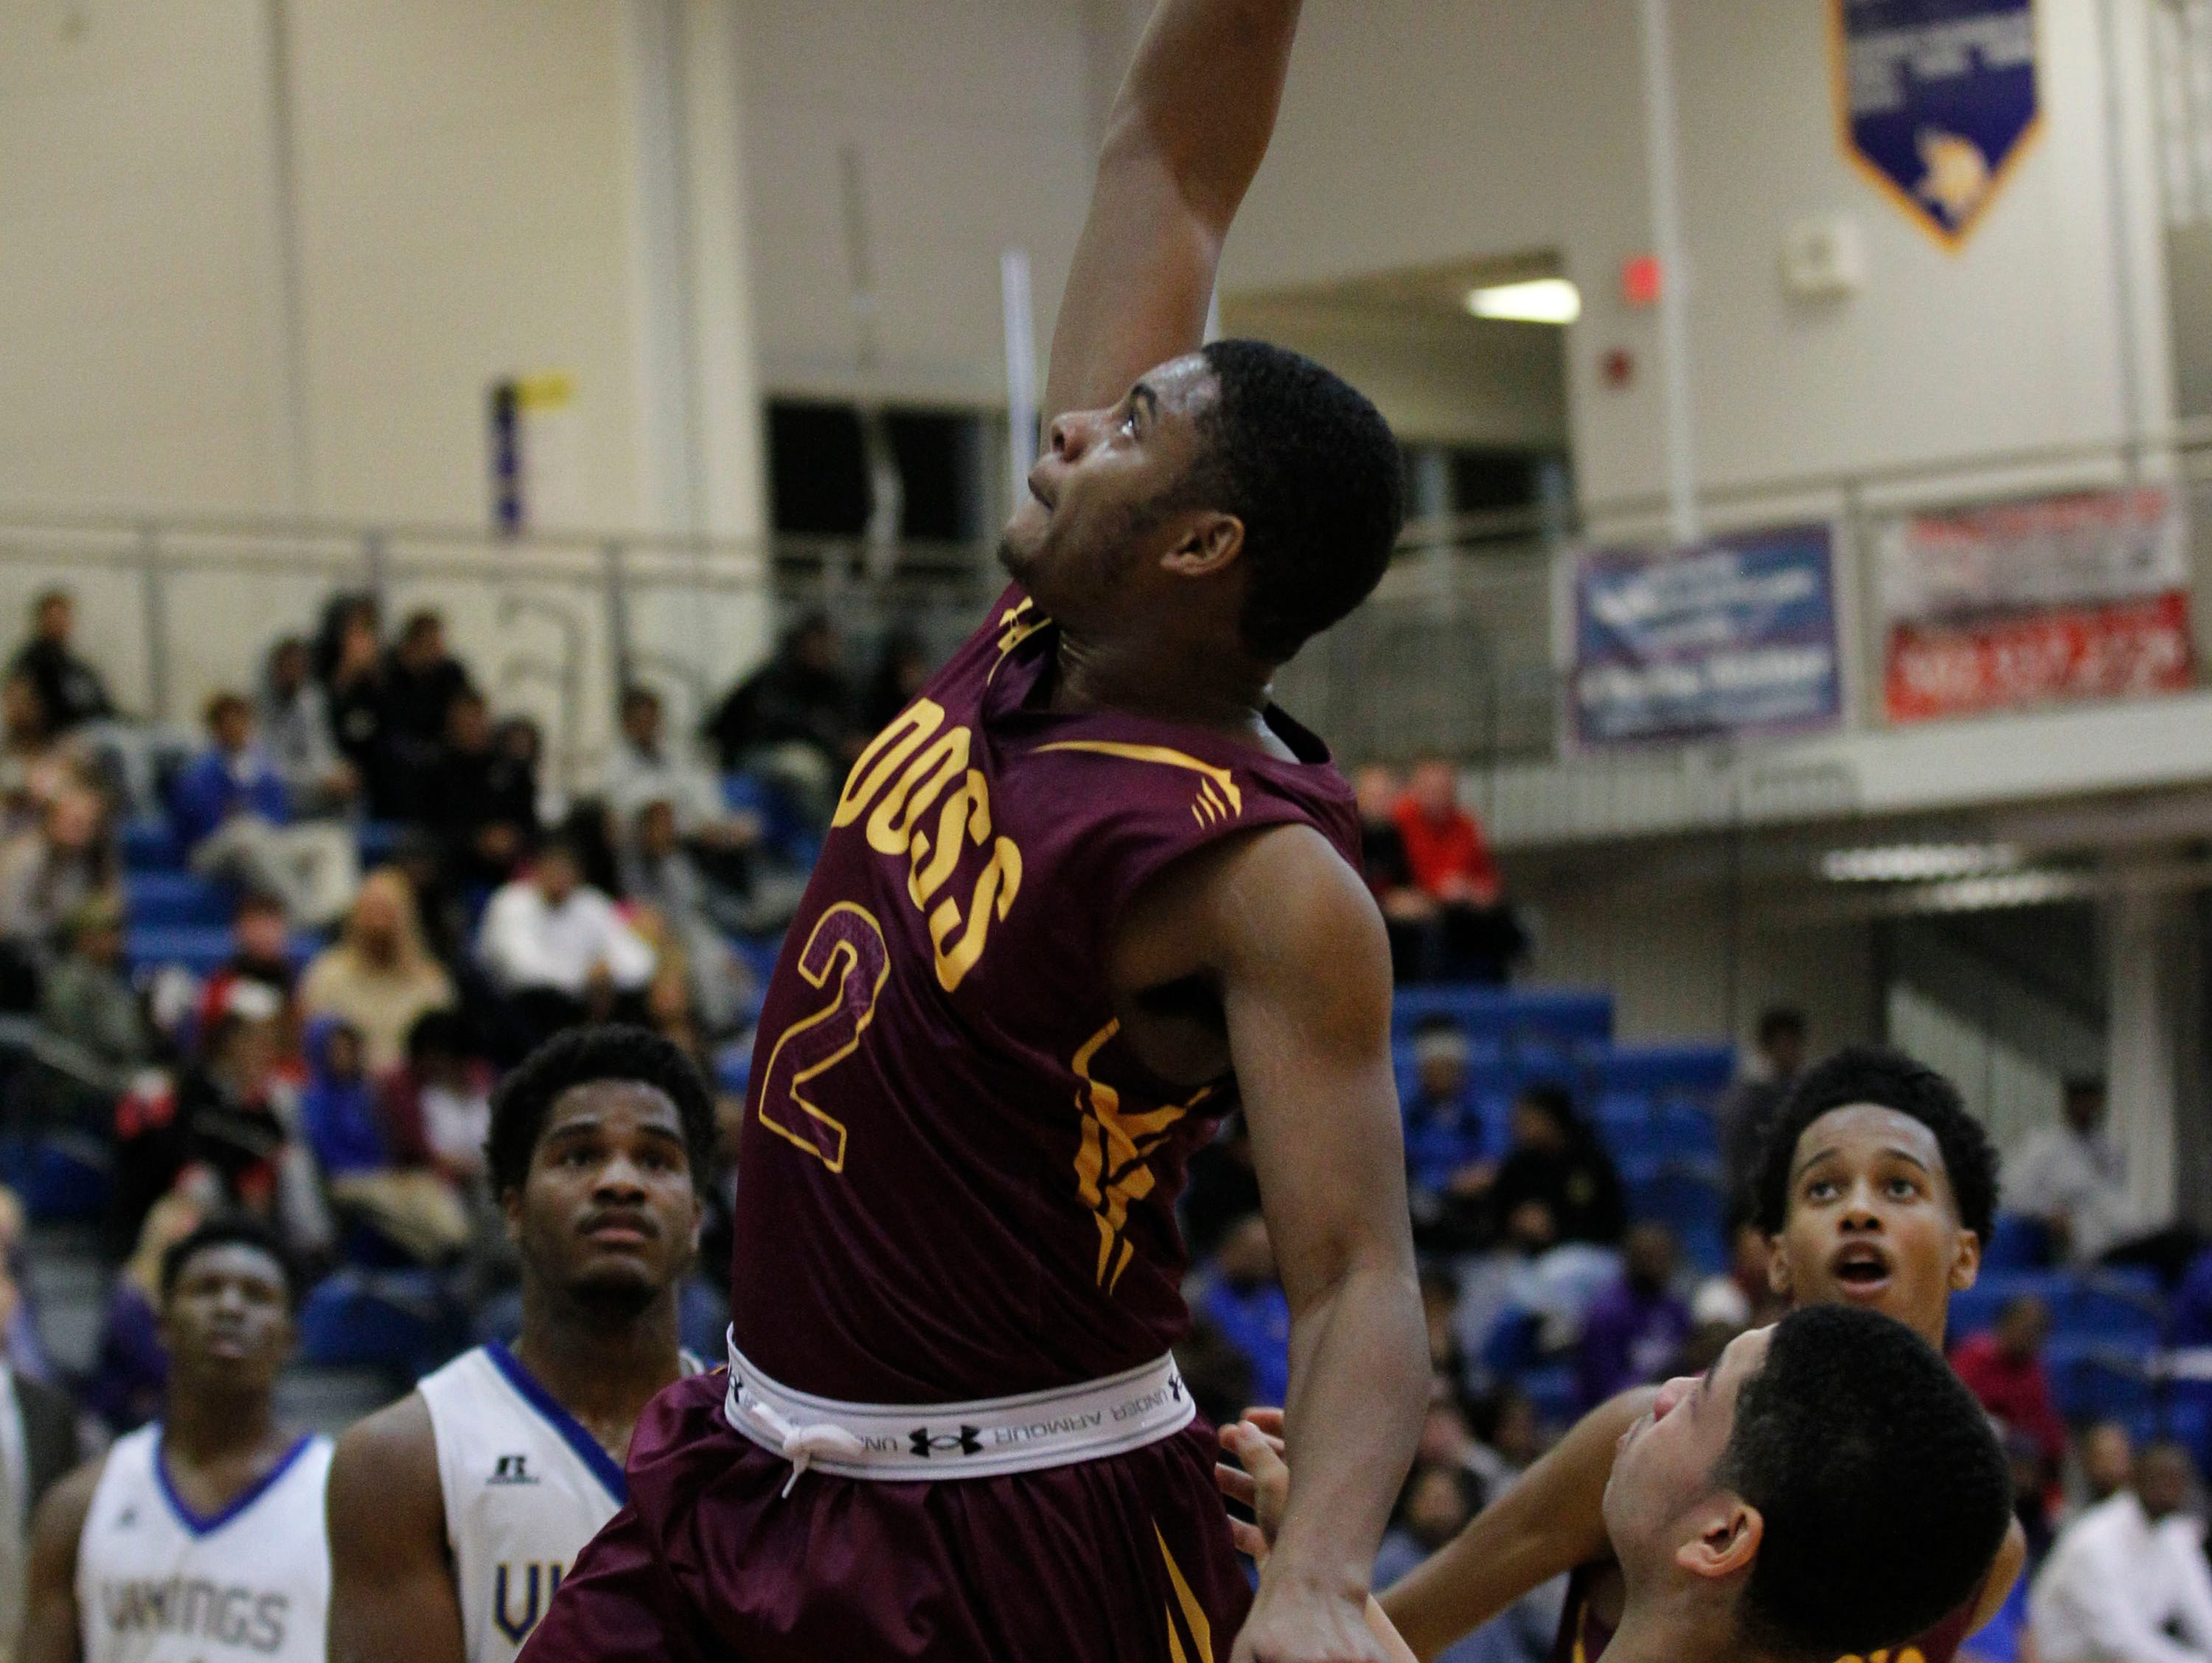 Doss High School's Stephon Franklin (2) fights to get his shot off under pressure from Valley High School's Tre Anderson (23) during the first half of play at Valley High School in Louisville, Kentucky. January 3, 2017